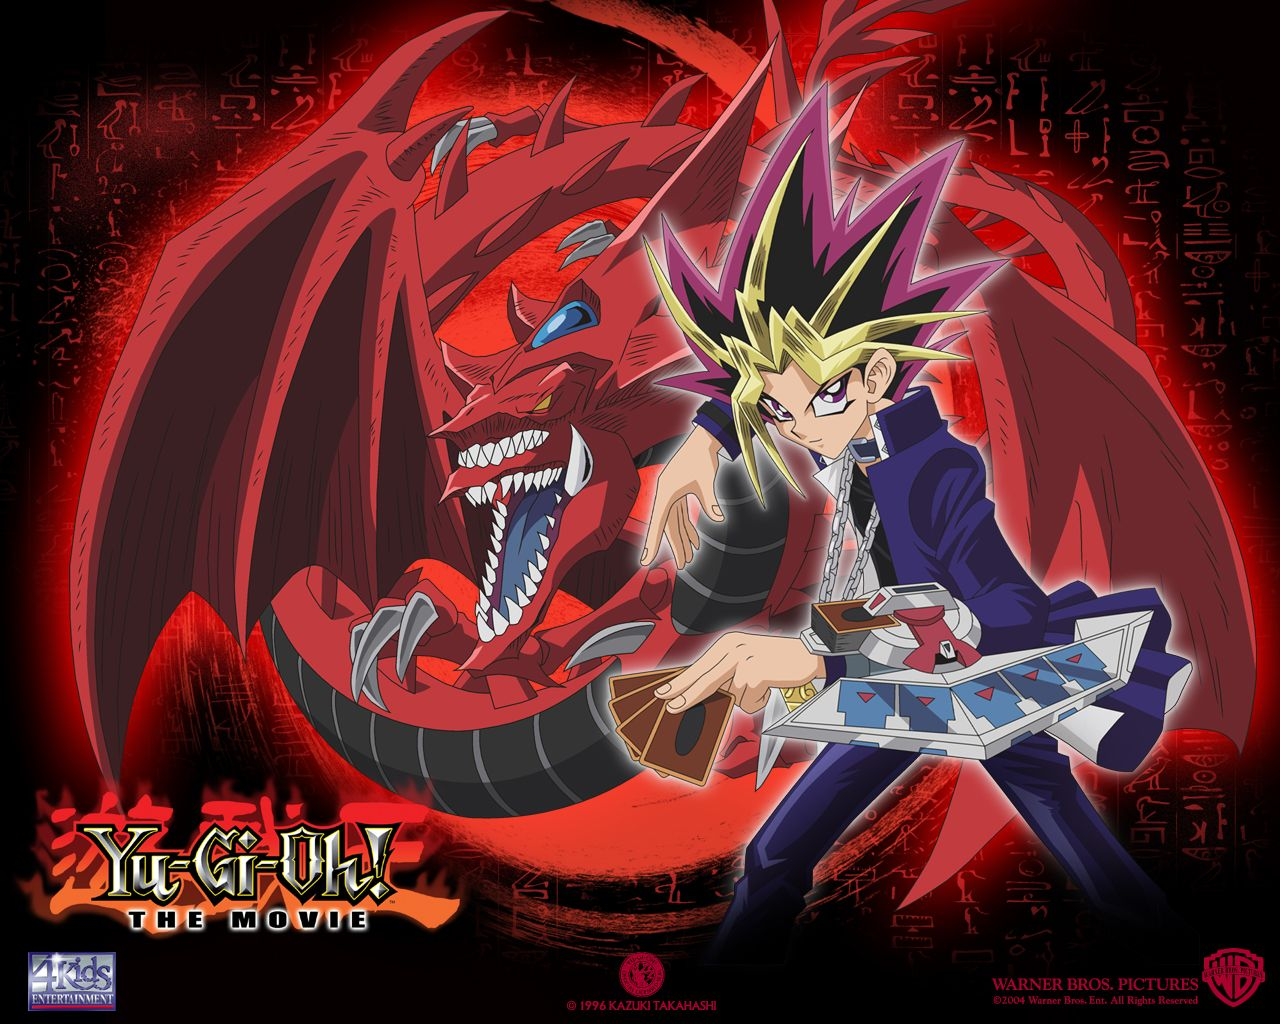 Yu Gi Oh Wallpapers 12 Desktop Background Drawings For Kids Computers Anime Background Drawing Yugioh